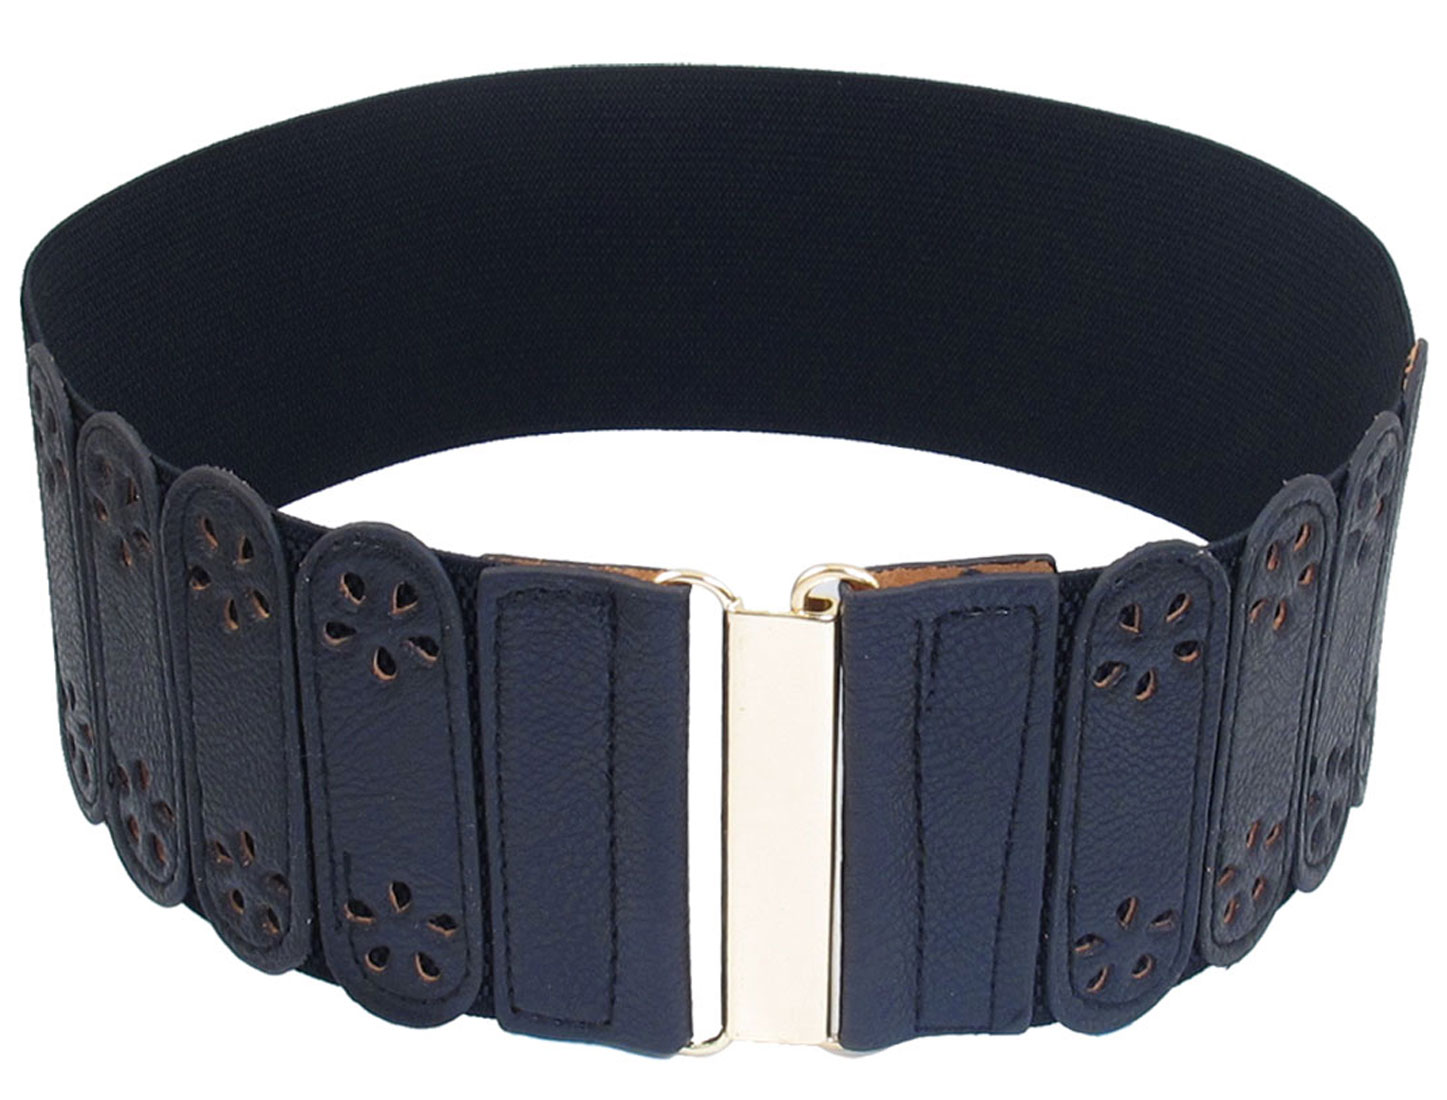 Ladies Hollow Flower Decor Interlocking Closure Stretchy Band Waist Belt Dark Blue